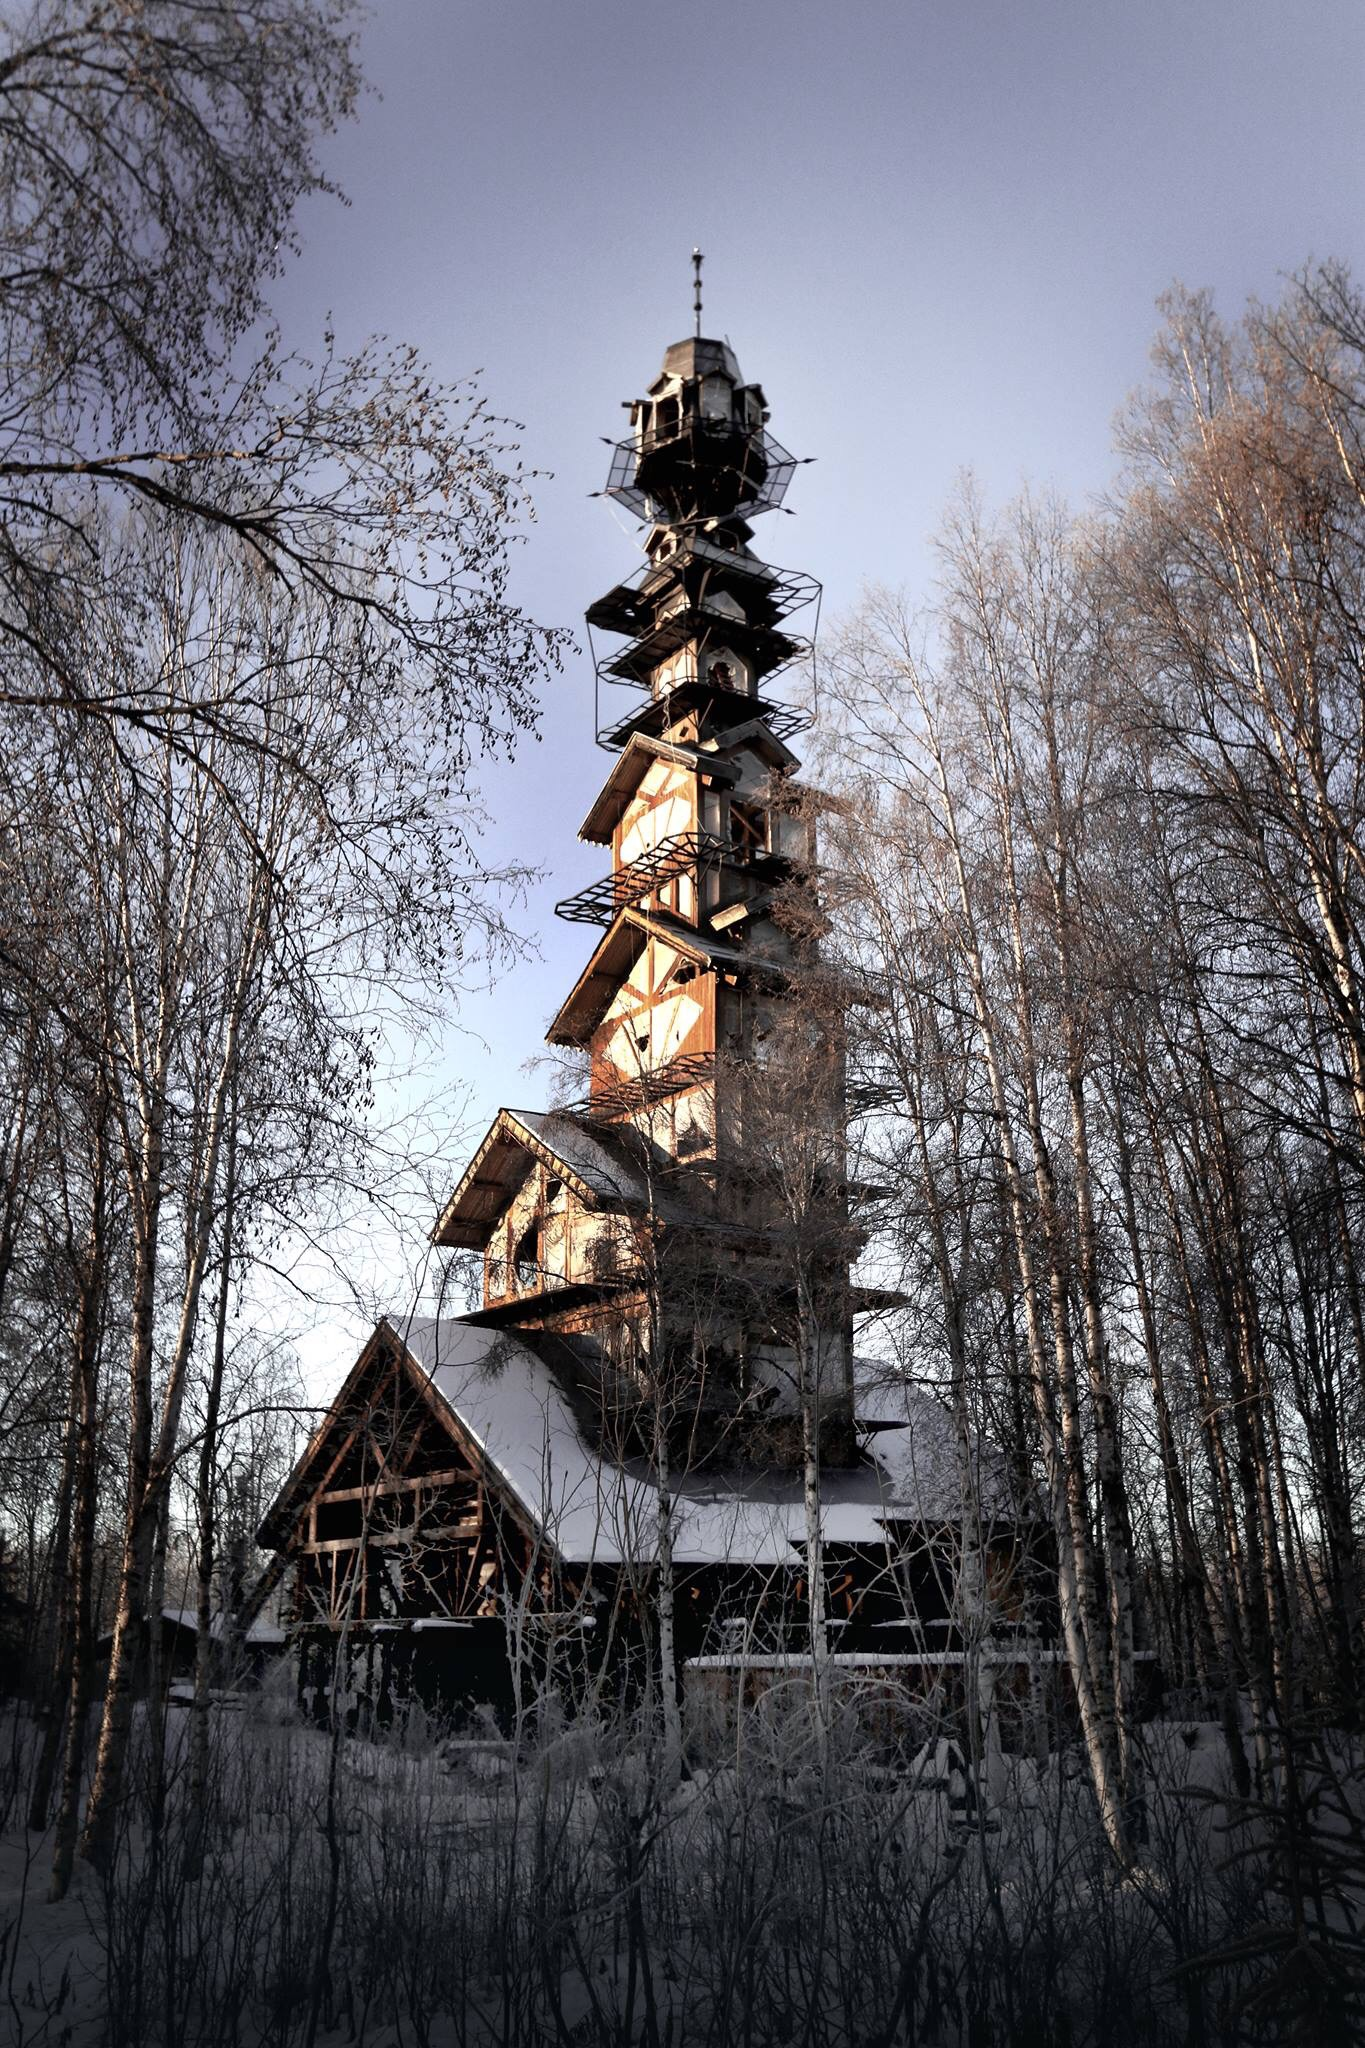 A Towering Home in the Alaskan Wilderness Looks Like Something Right out of a Dr. Seuss Book